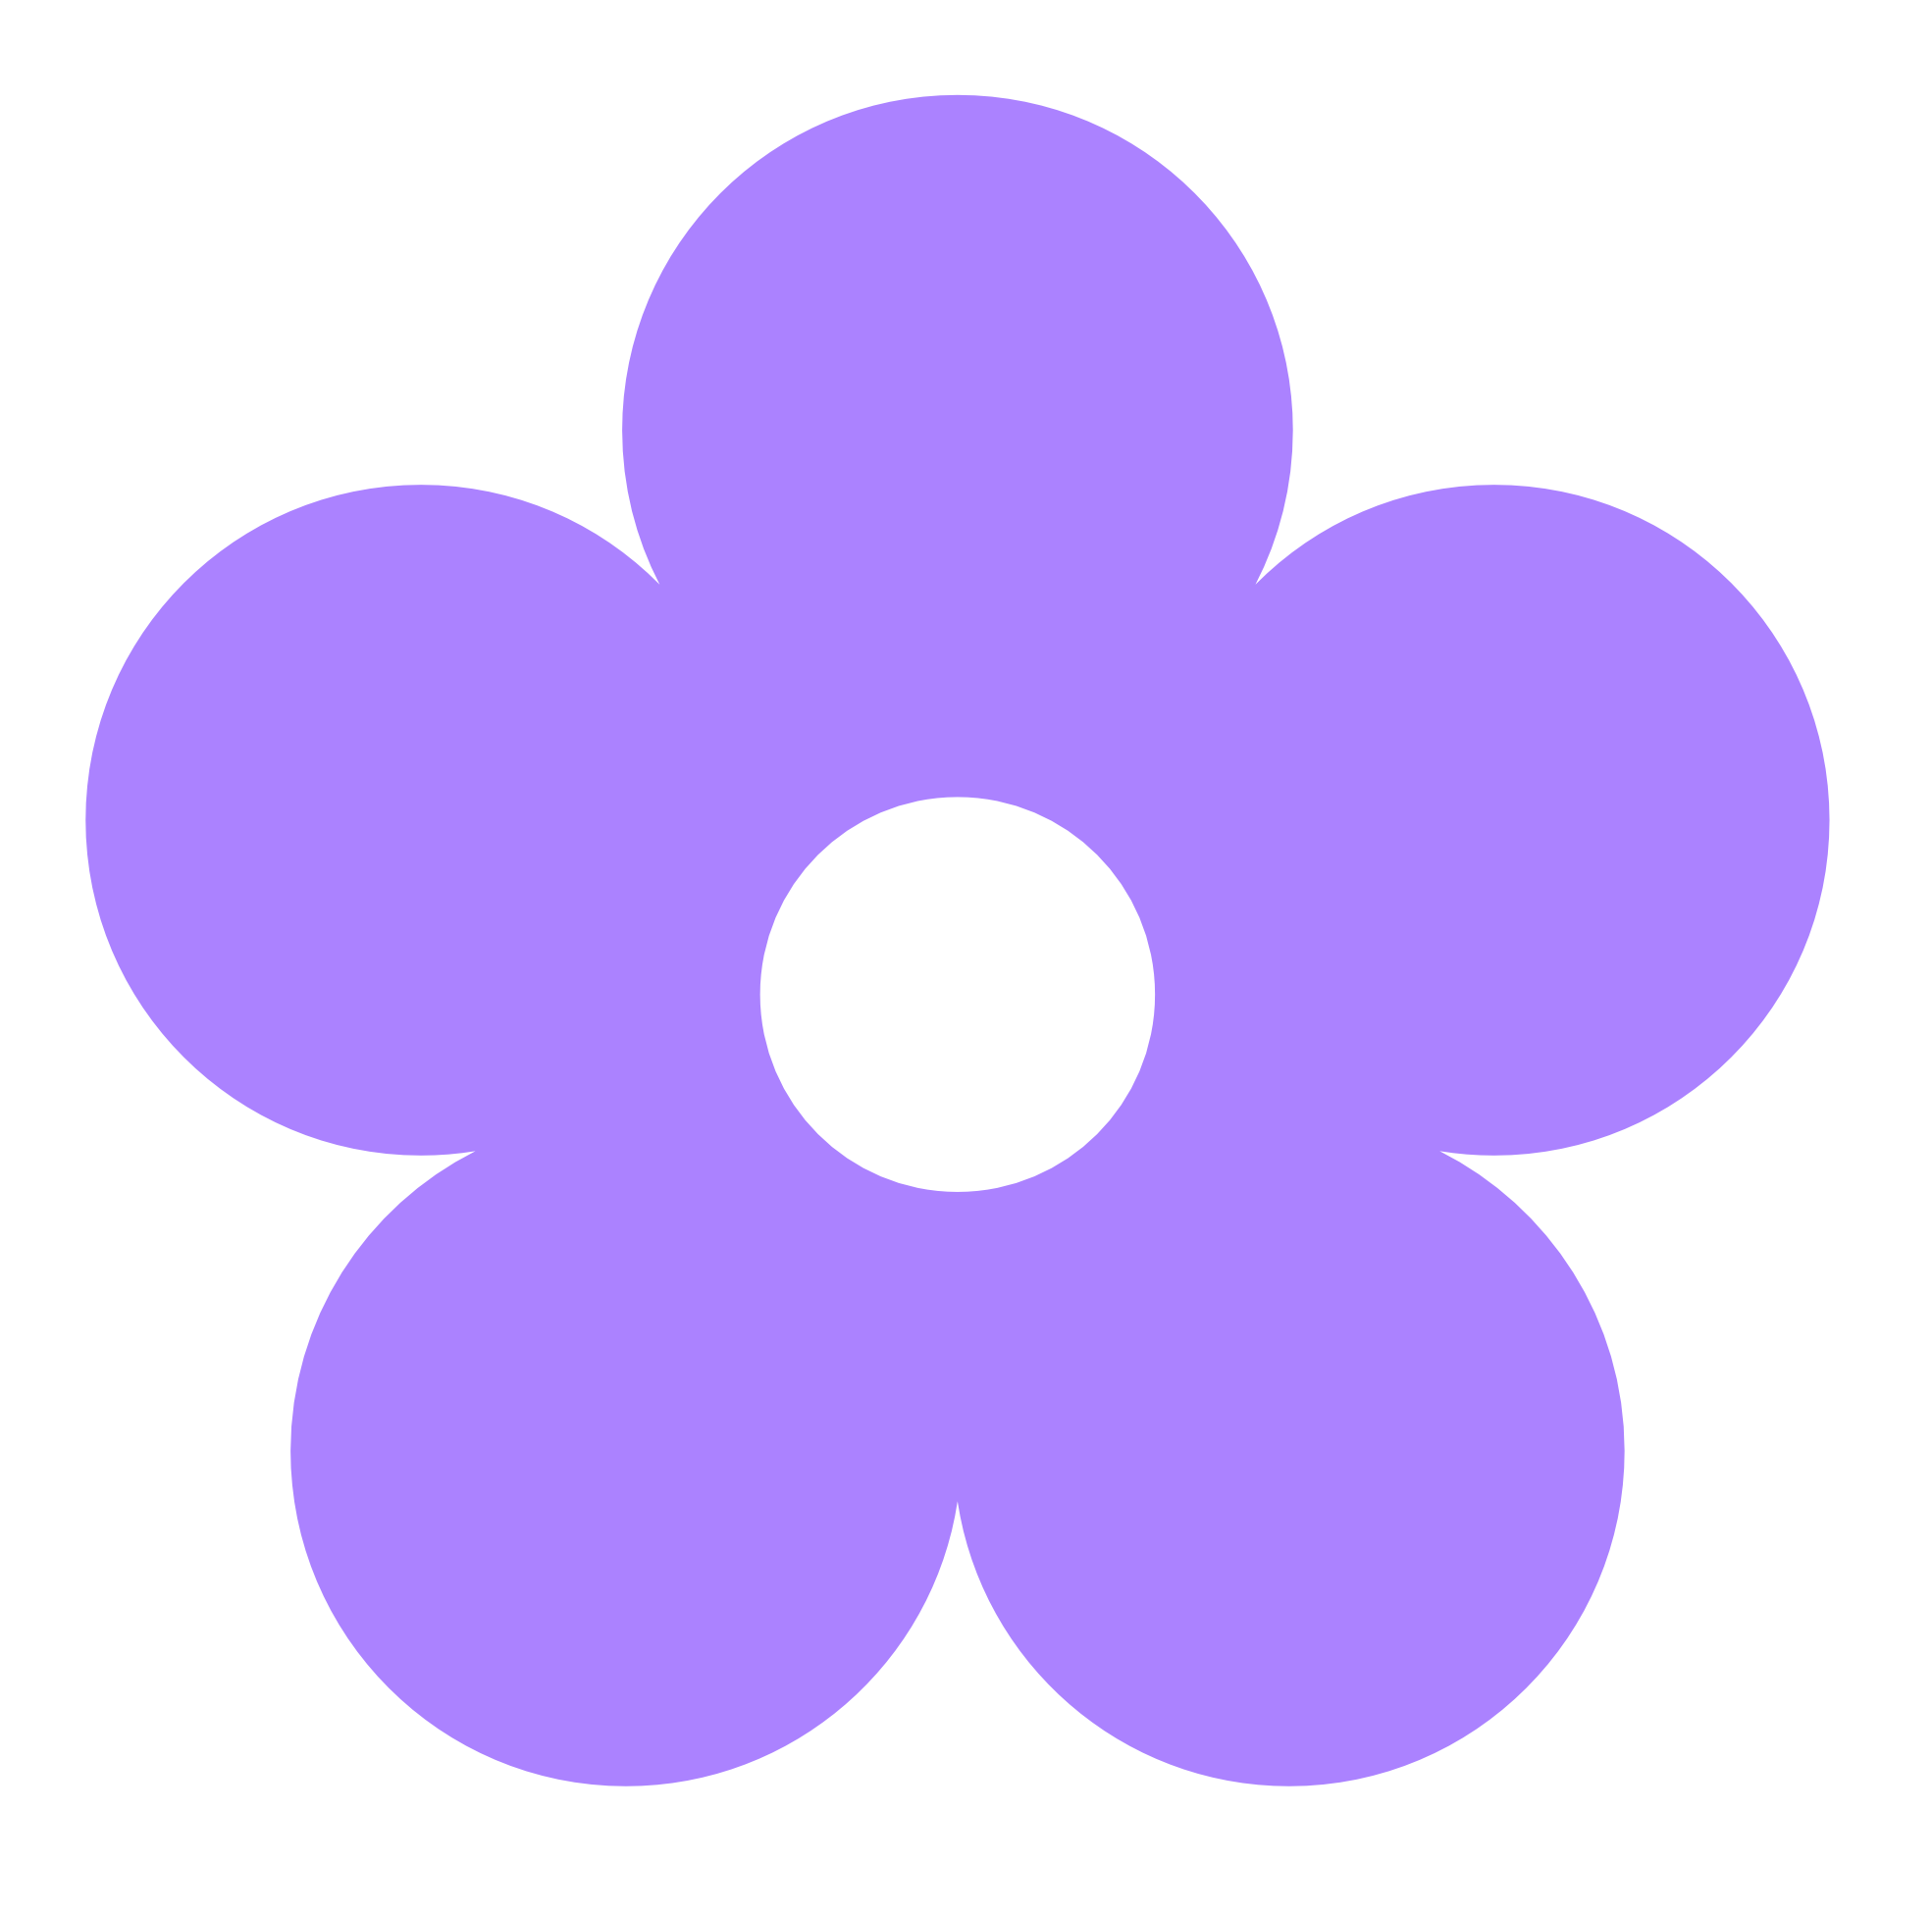 Flowers purple clip art. Flower in clipart